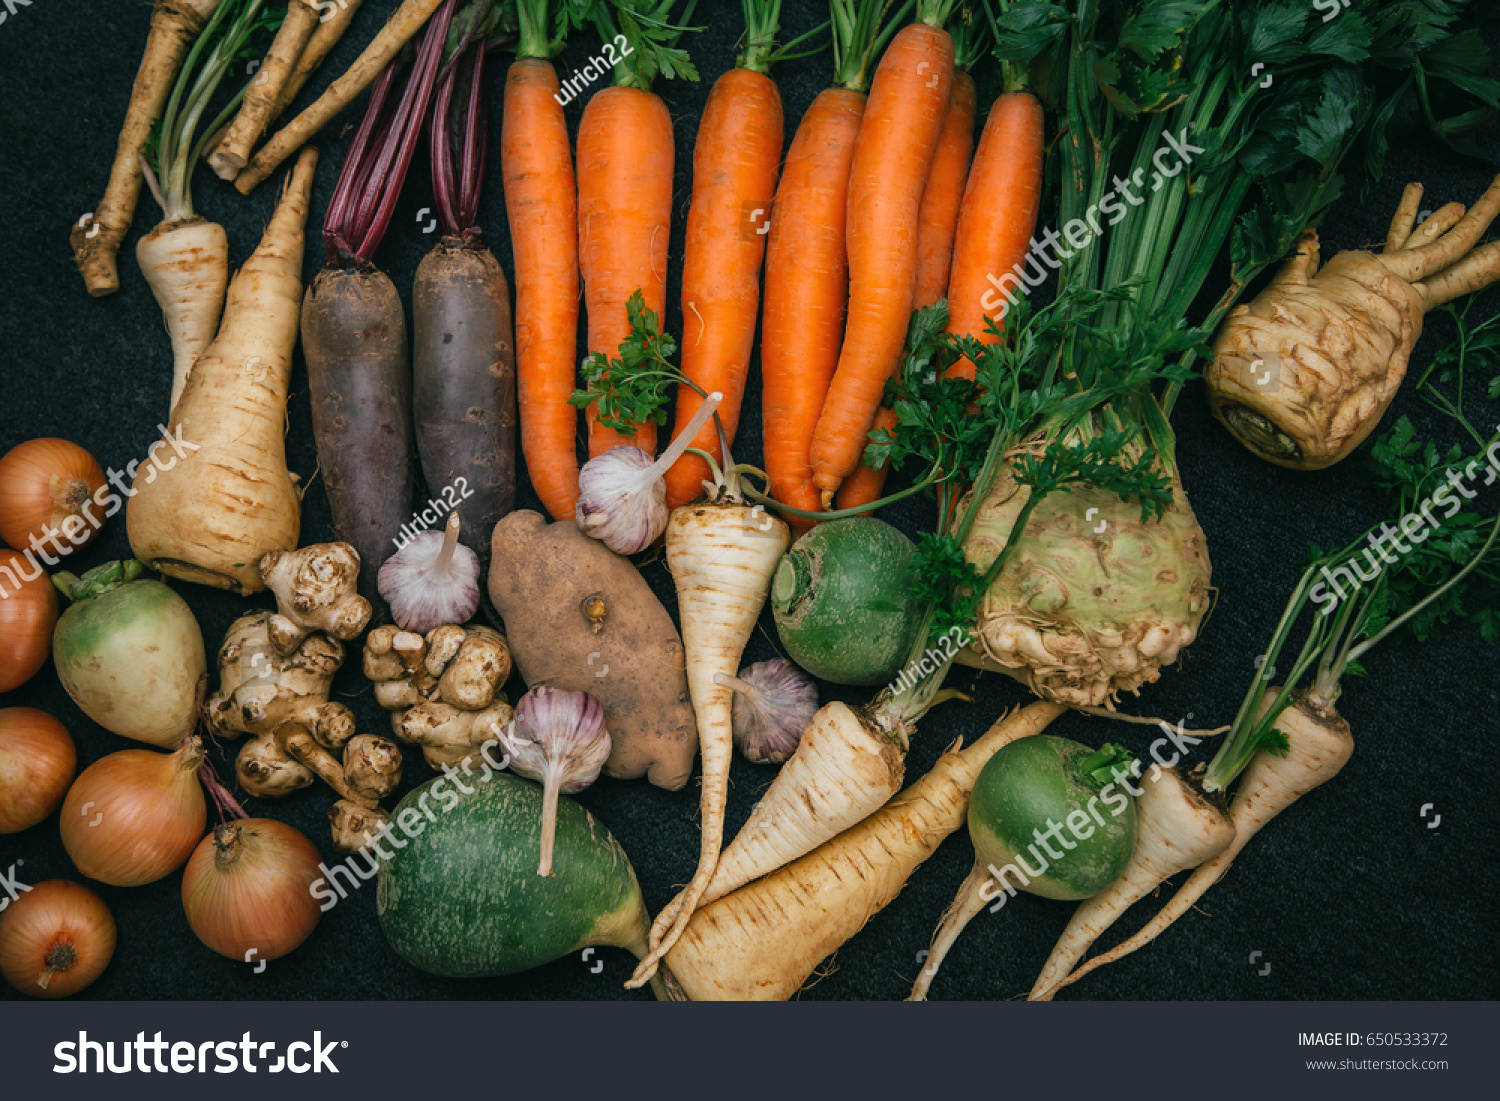 Root crops, carrots, parsley root, turnip, onion, garlic, Jerusalem artichoke, horseradish. Root crops background. Food background #650533372